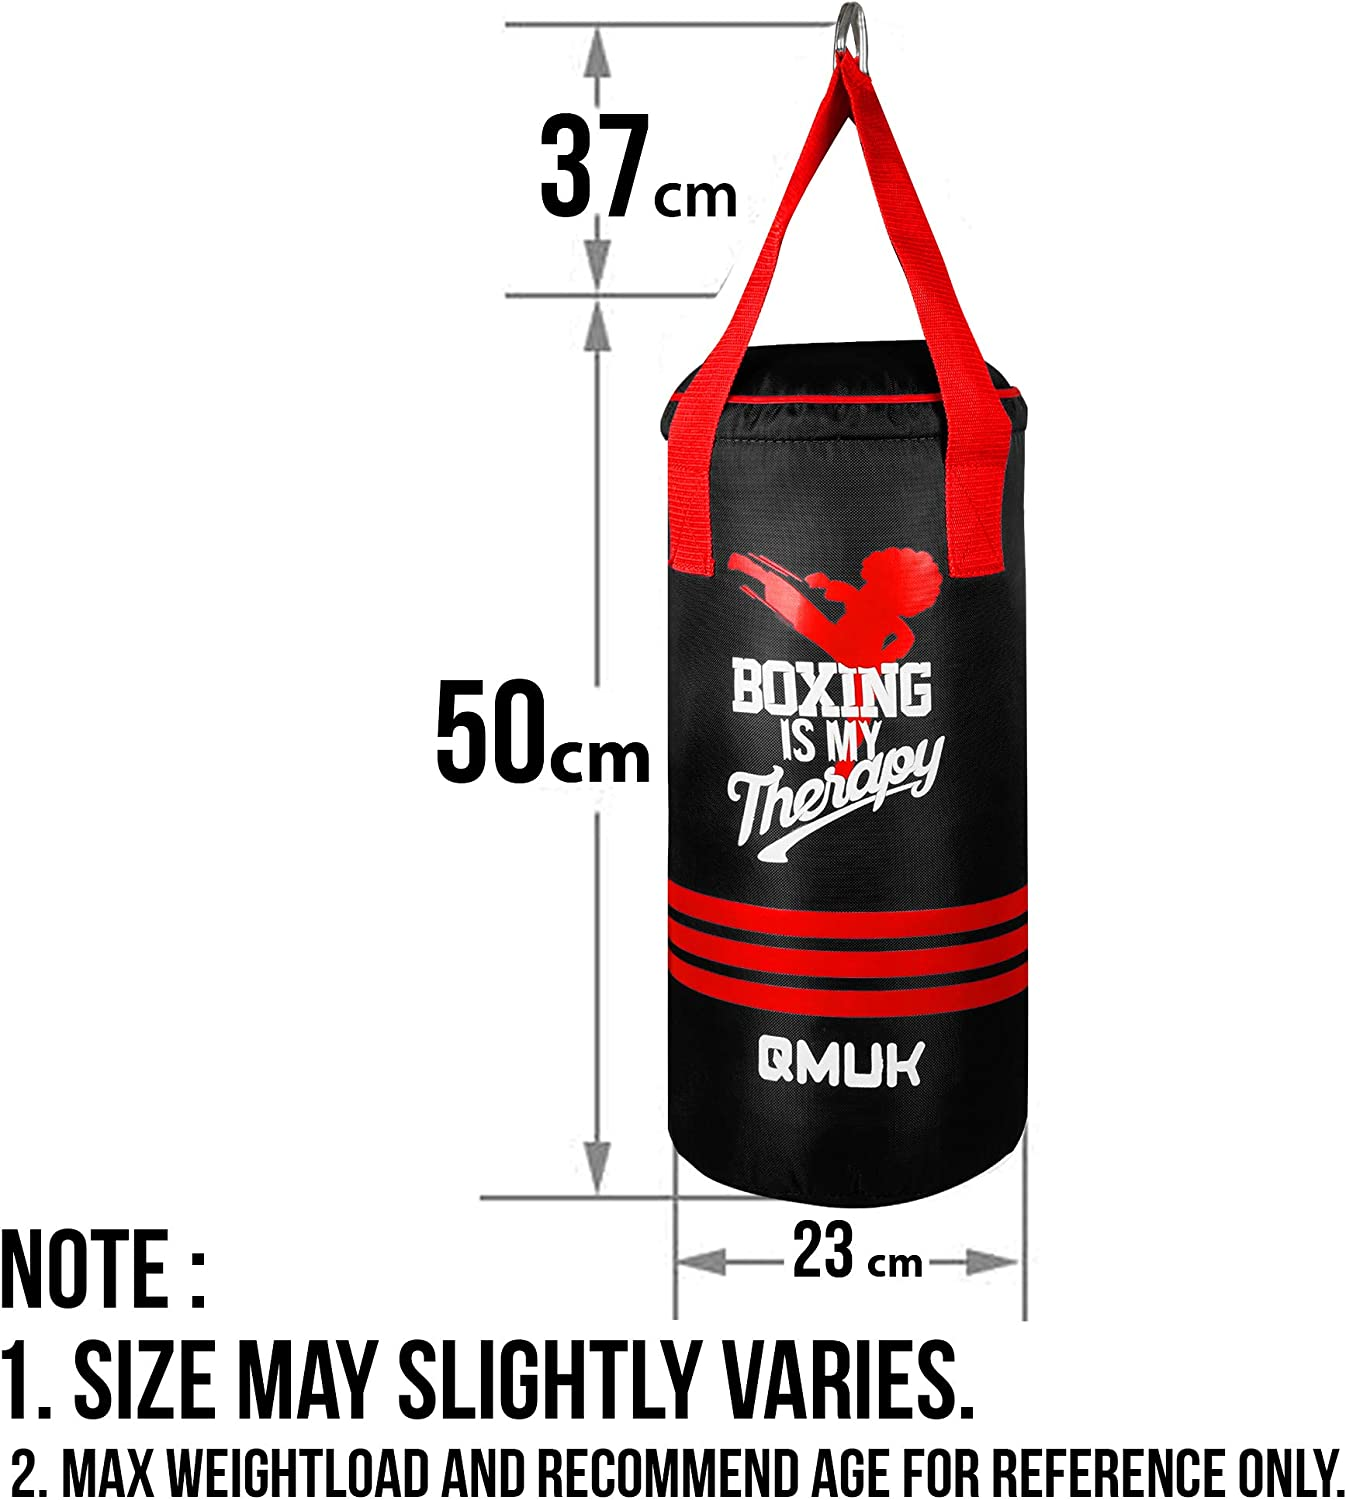 UNFILLED QMUK Kids Punching Boxing Bag with Free Gloves for Kickboxing MMA Punching Bag Training Muay Thai Sparring Karate Taekwondo Exercise and Fitness 50 cm